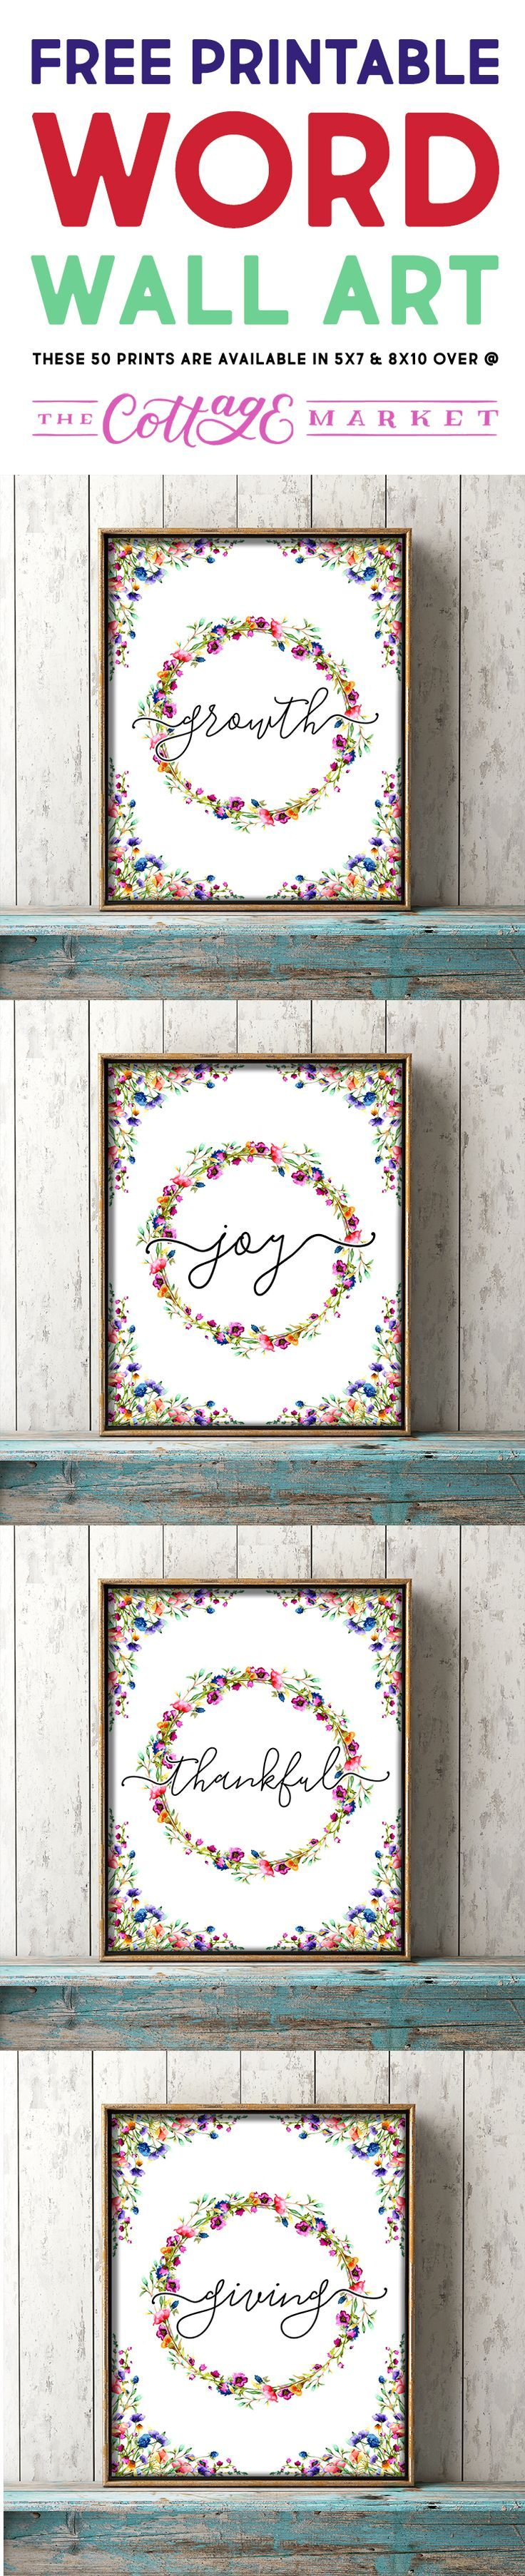 Free Printable Word Wall Art What's Your Word Of The Year?